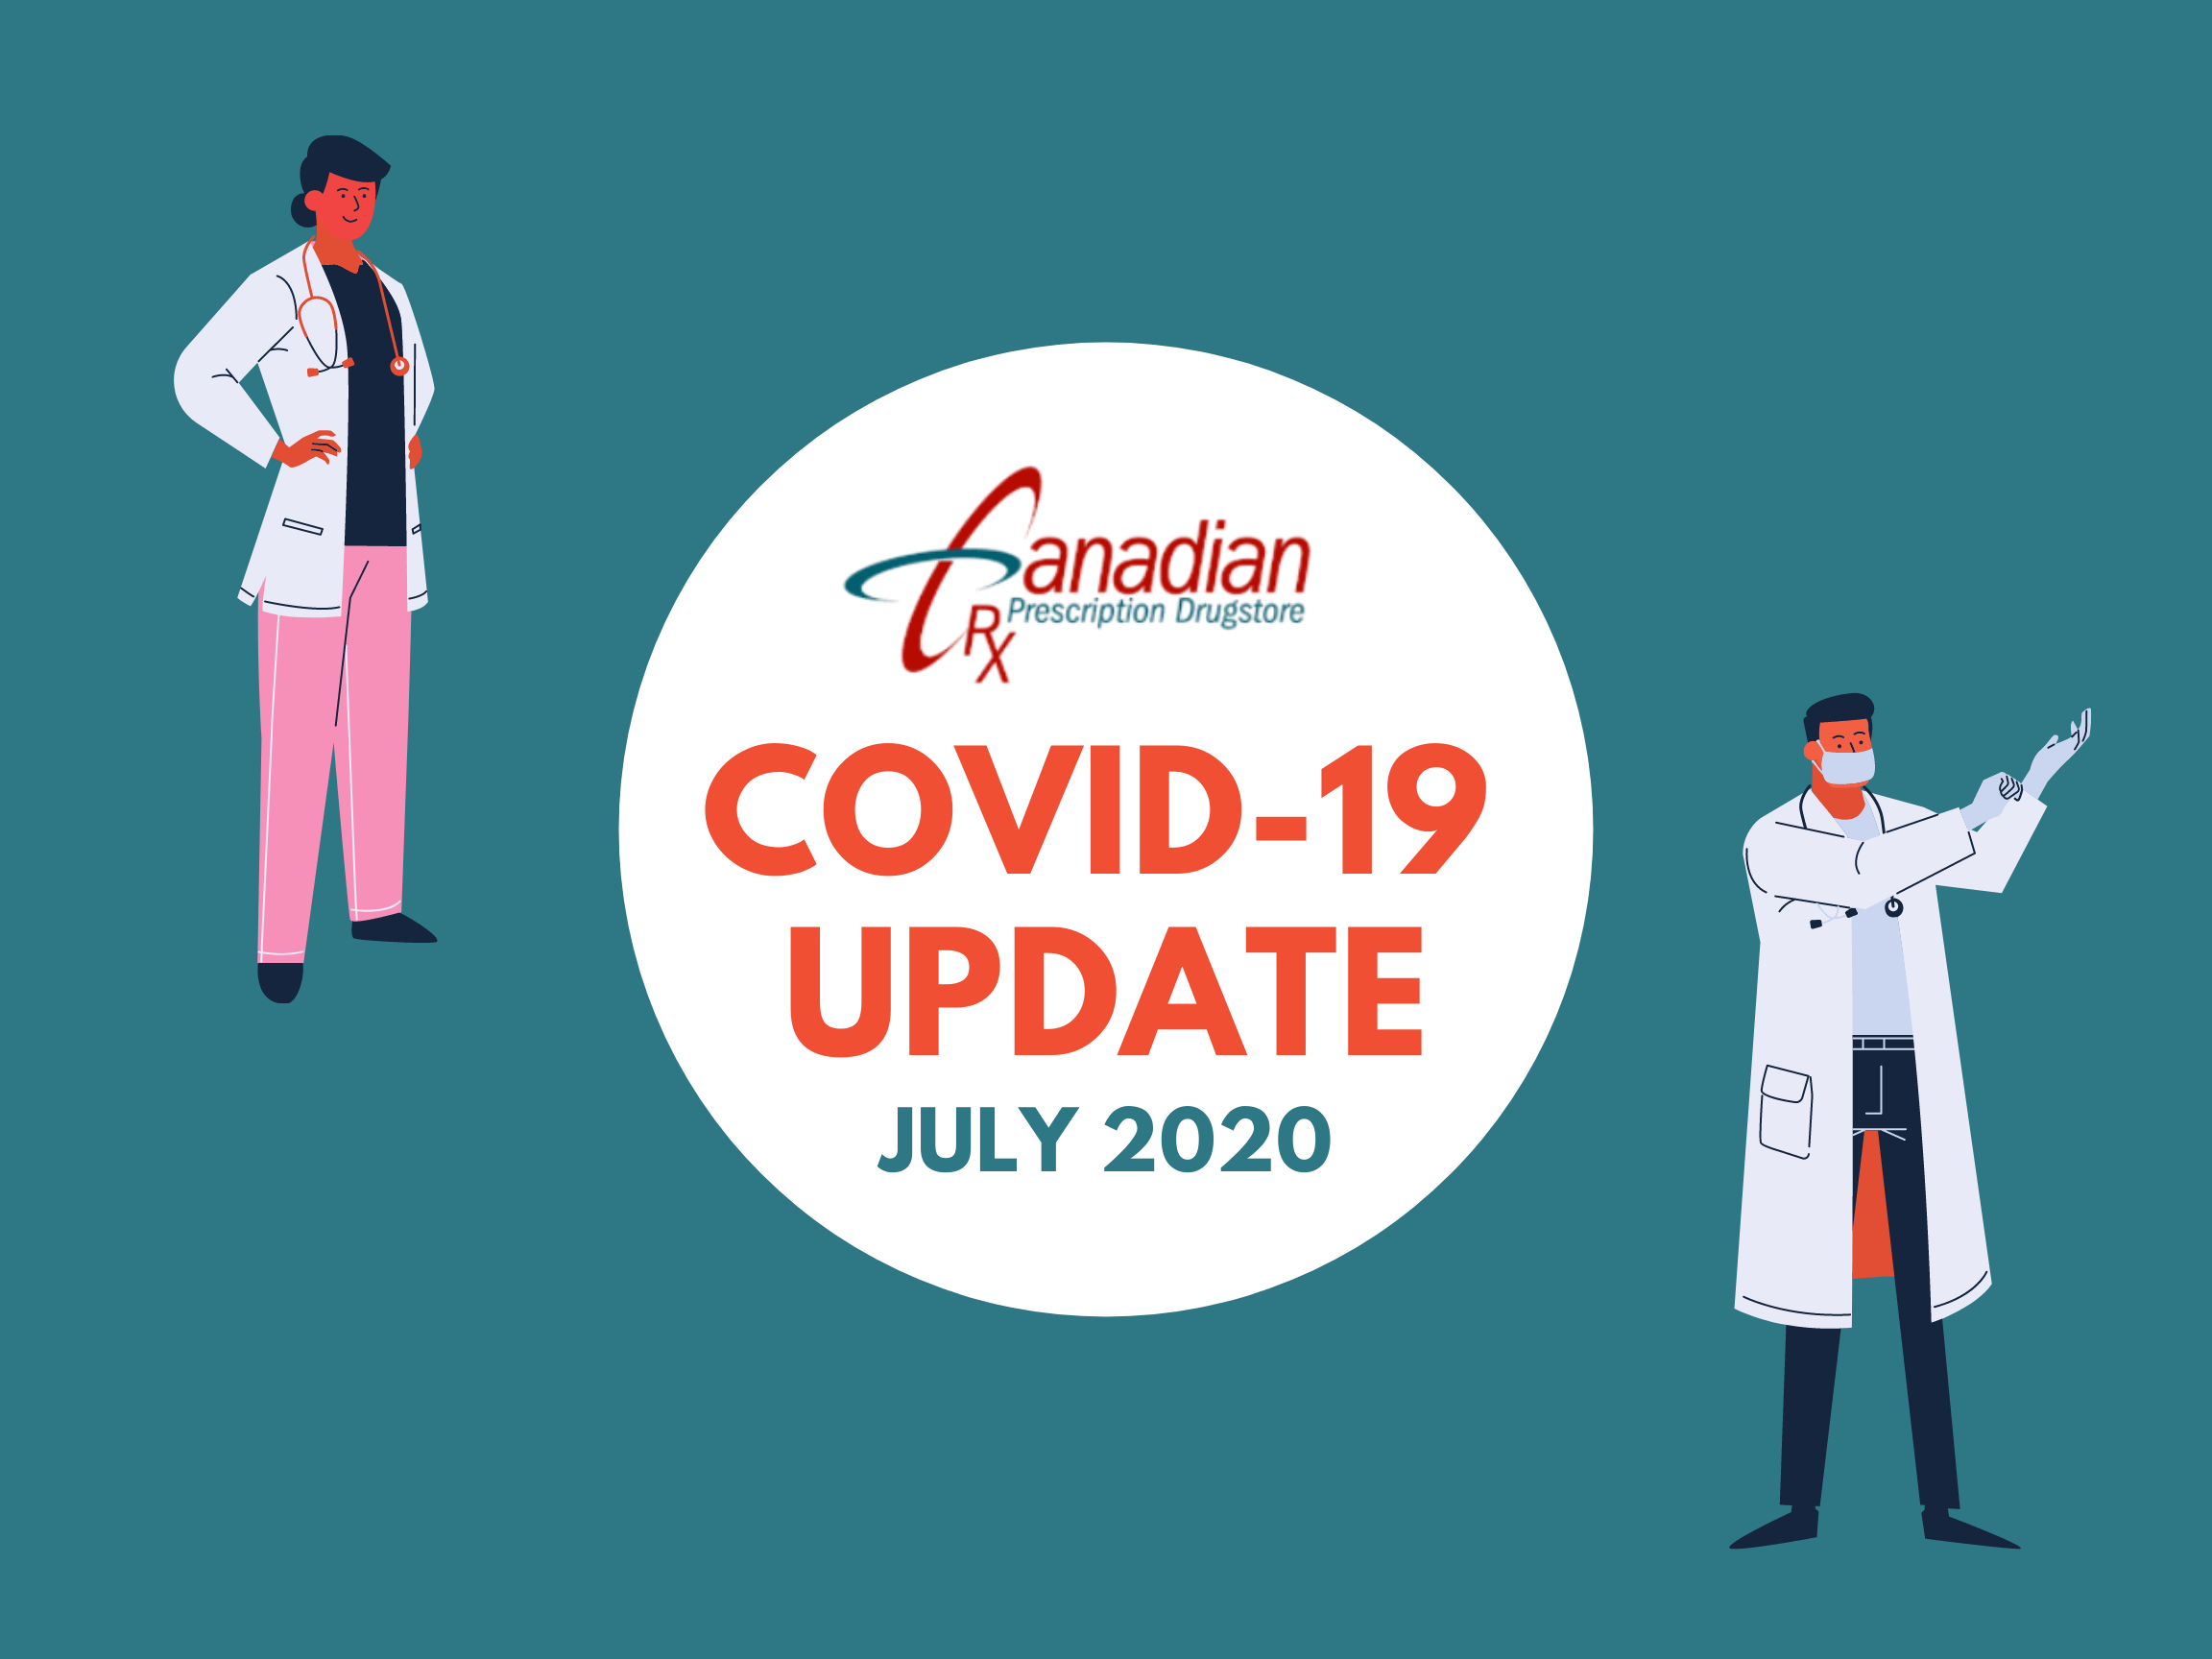 COVID-19 VIRUS UPDATE JULY 2020